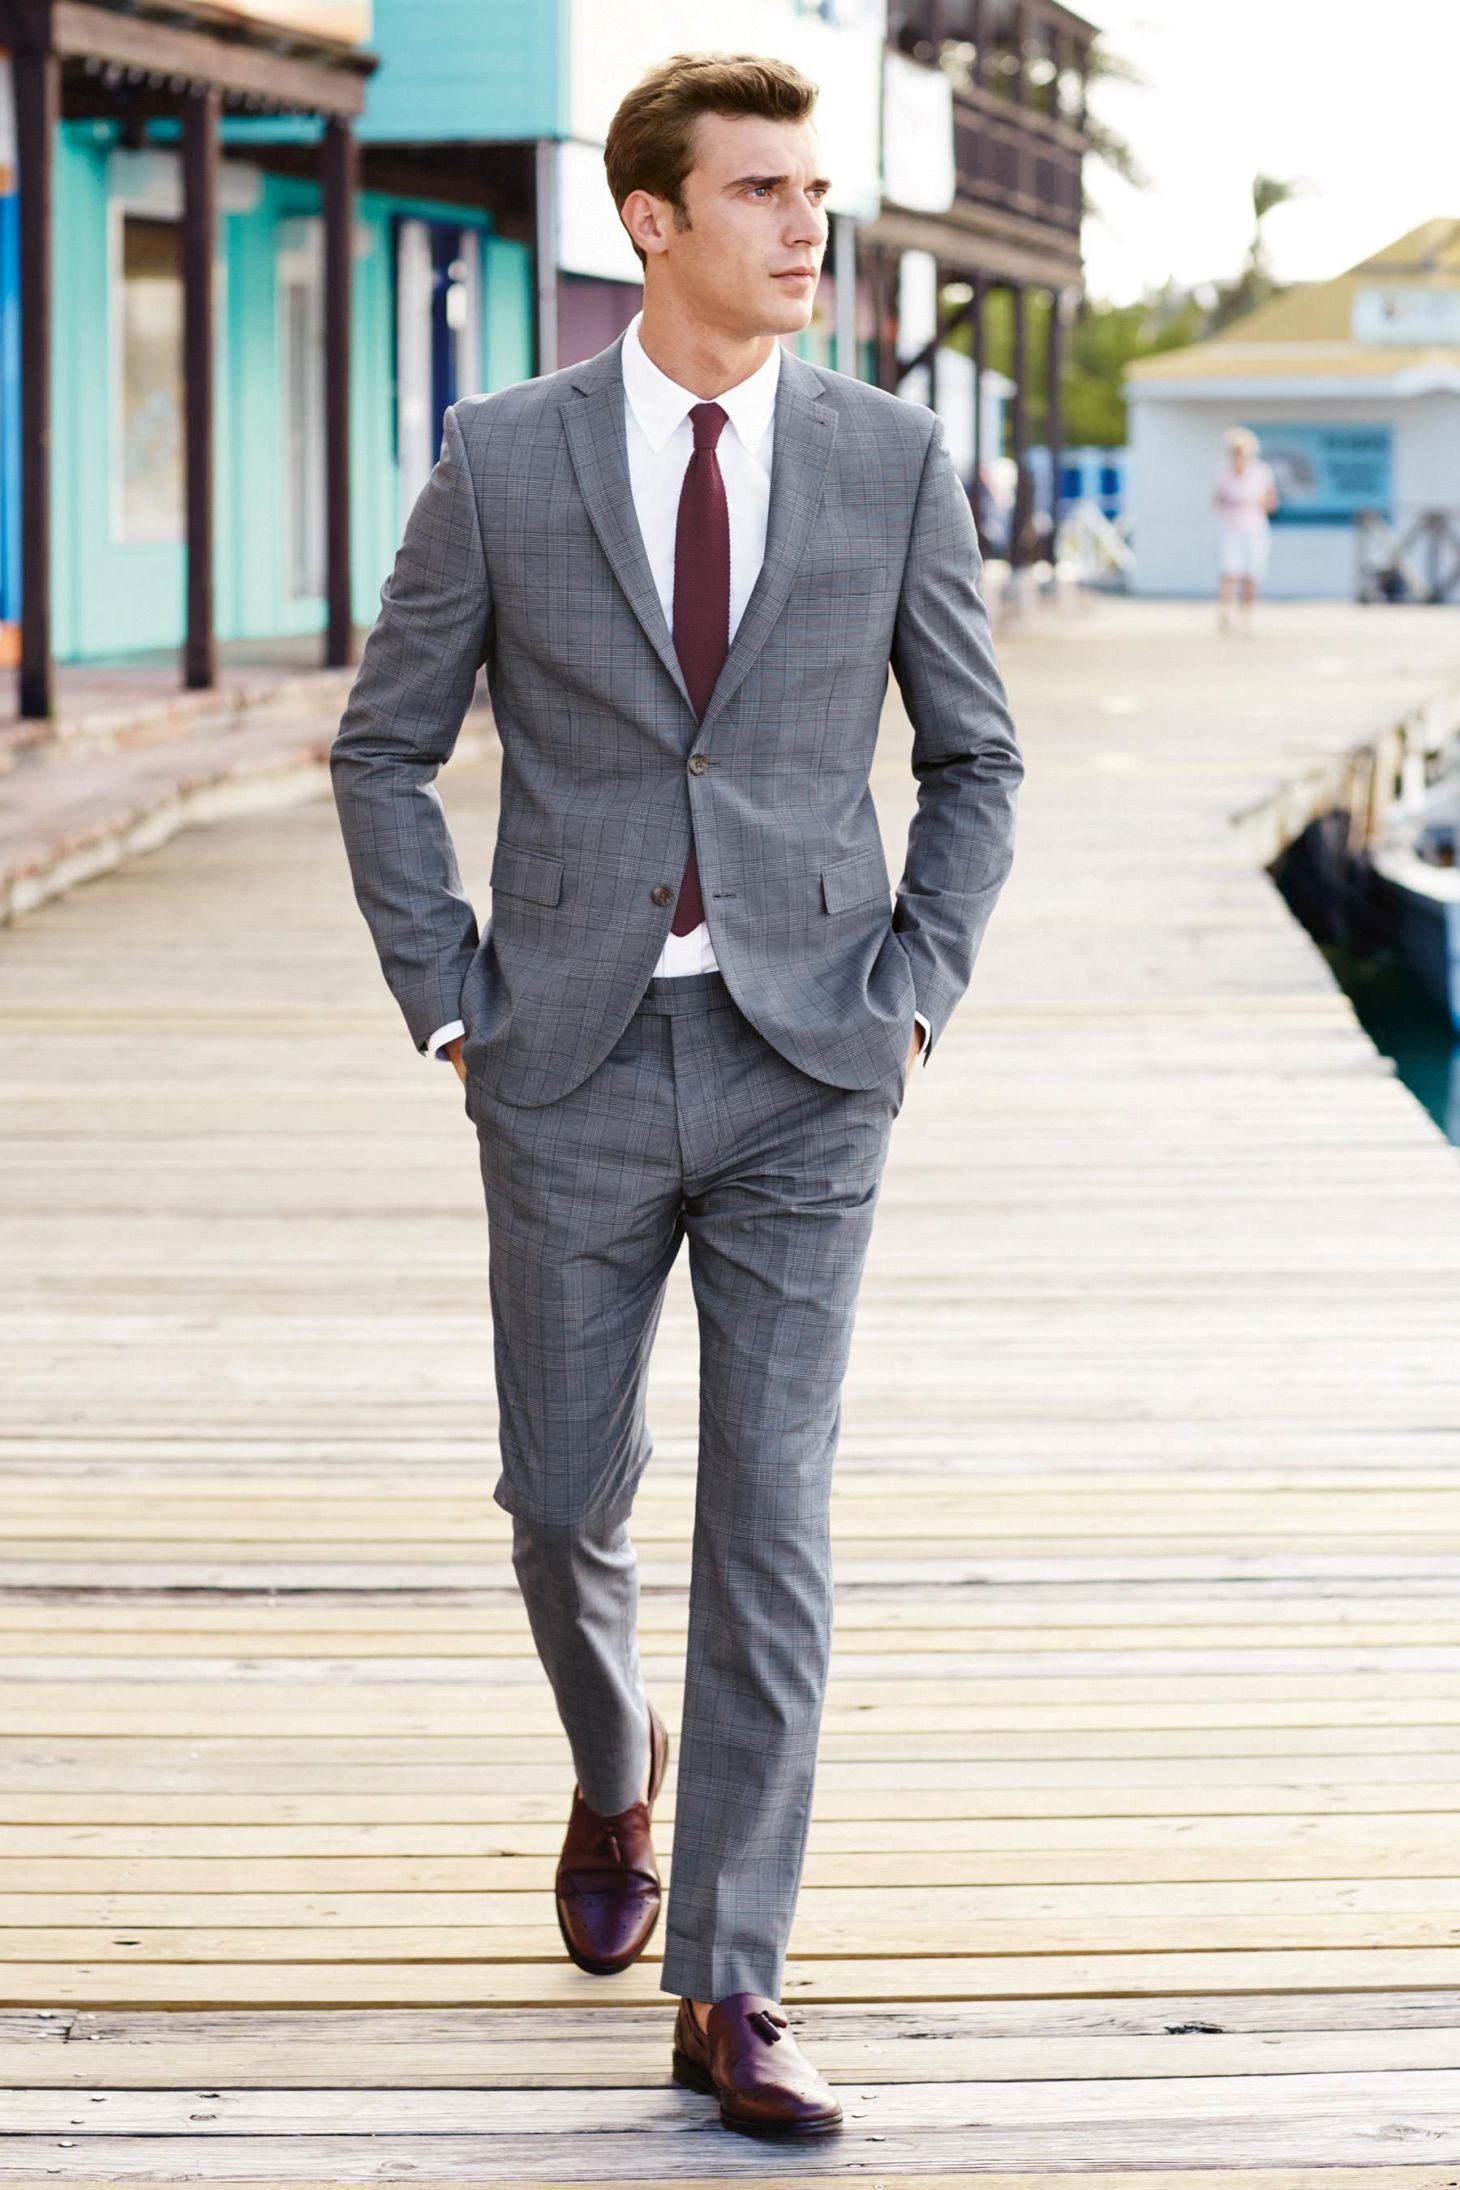 How to Wear a Grey Plaid Suit (51 looks) | Men's Fashion